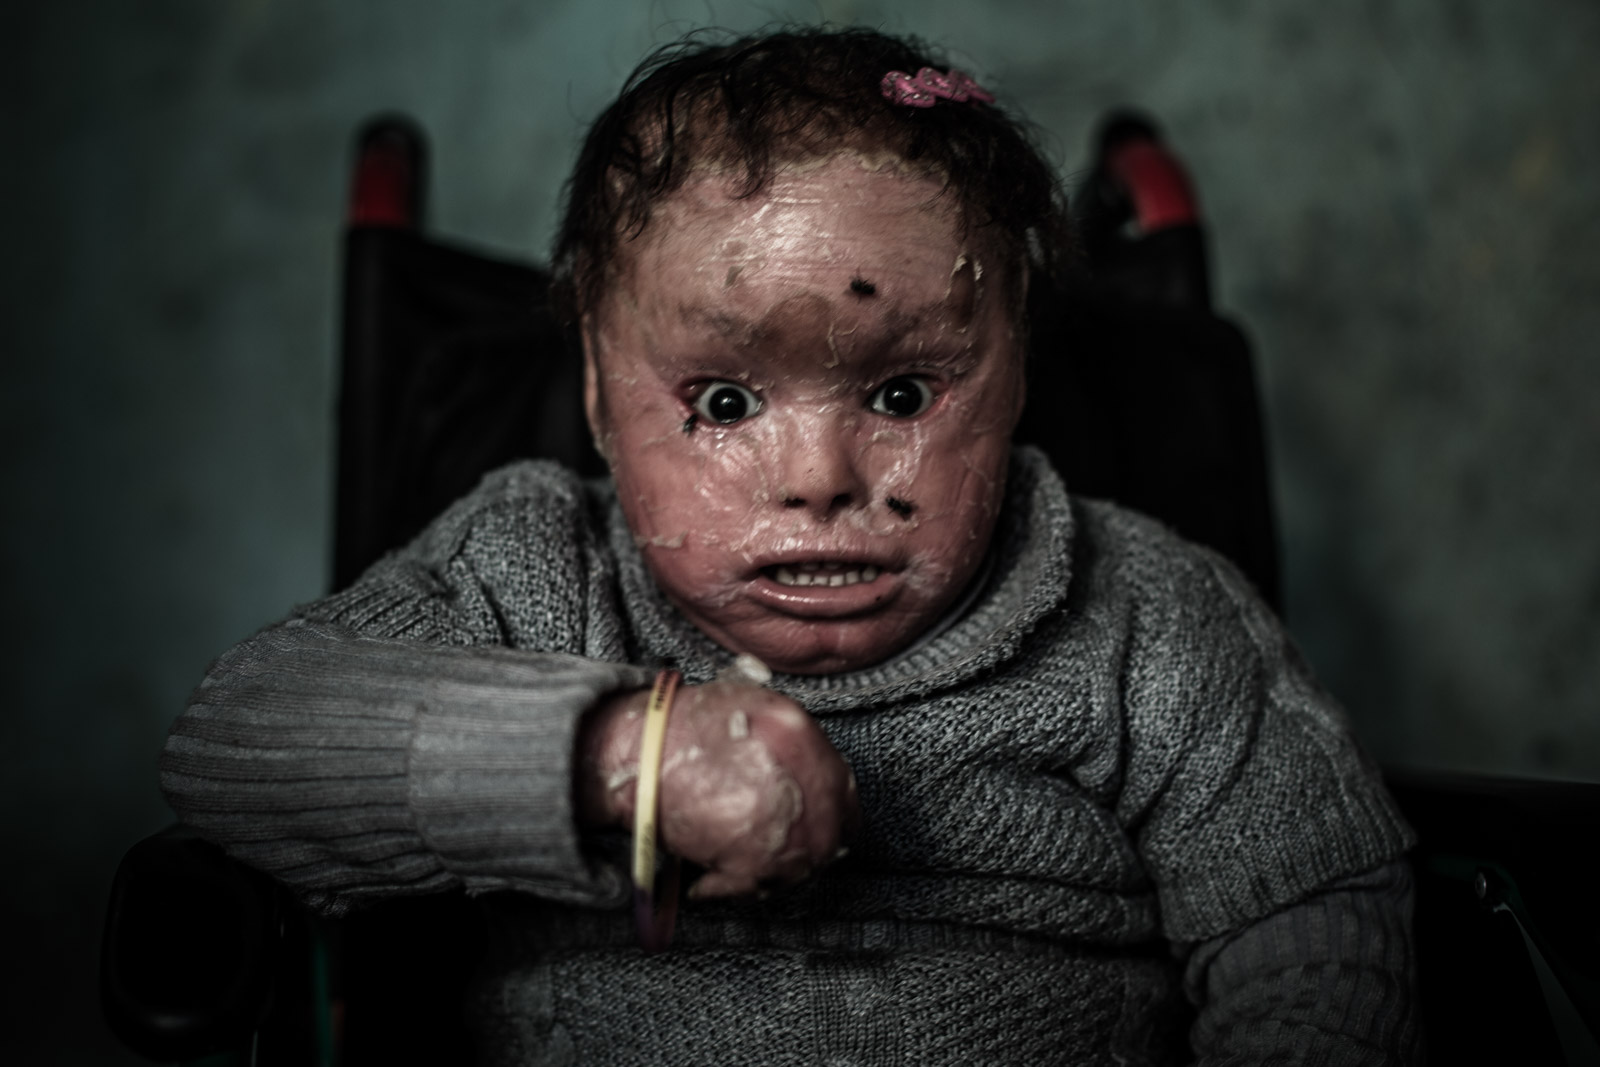 Beit Hanoun, Gaza - December 12, 2012: Shahed is sitting in her wheelchair in Beit Hanoun, Gaza Strip. She suffers a genetic skin disease known as a Harlequin Ichthyosis, along with irregular growth of her leg. While pregnant, Shahed's mother was heavily exposed to the white phosphorus chemicals used by the Israeli Air Force attacks on Gaza Strip. After her birth, mother has abandoned her due to Shahed's medical condition and her father was killed during the Cast Lead military operation in Gaza. Her grandmother is only one taking care of Shahed. She runs an electrical fan next to Shahed's bed to prevent flies from feeding on her dead skin, especially during the summer season.